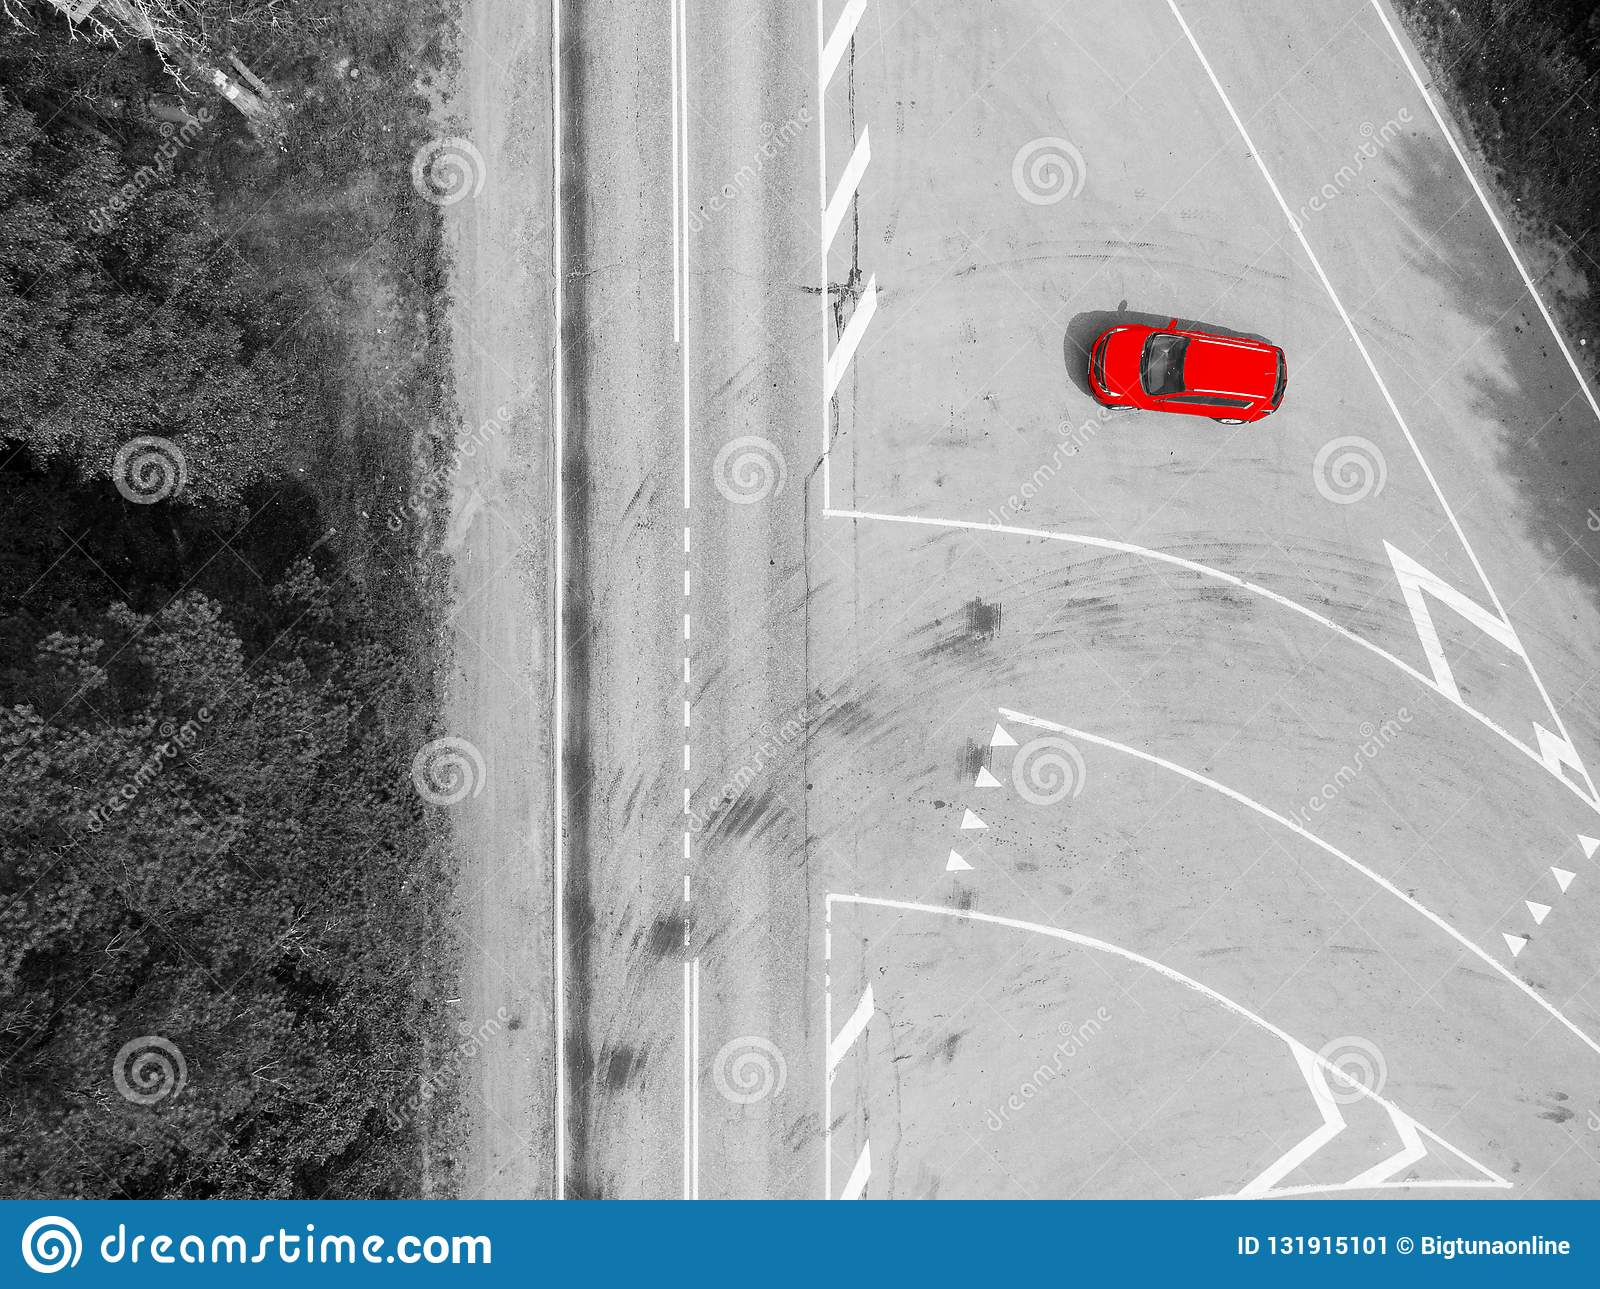 Aerial view of highway. Aerial view of a country road with moving red car. Car passing by. Aerial road. Aerial view flying. Captur